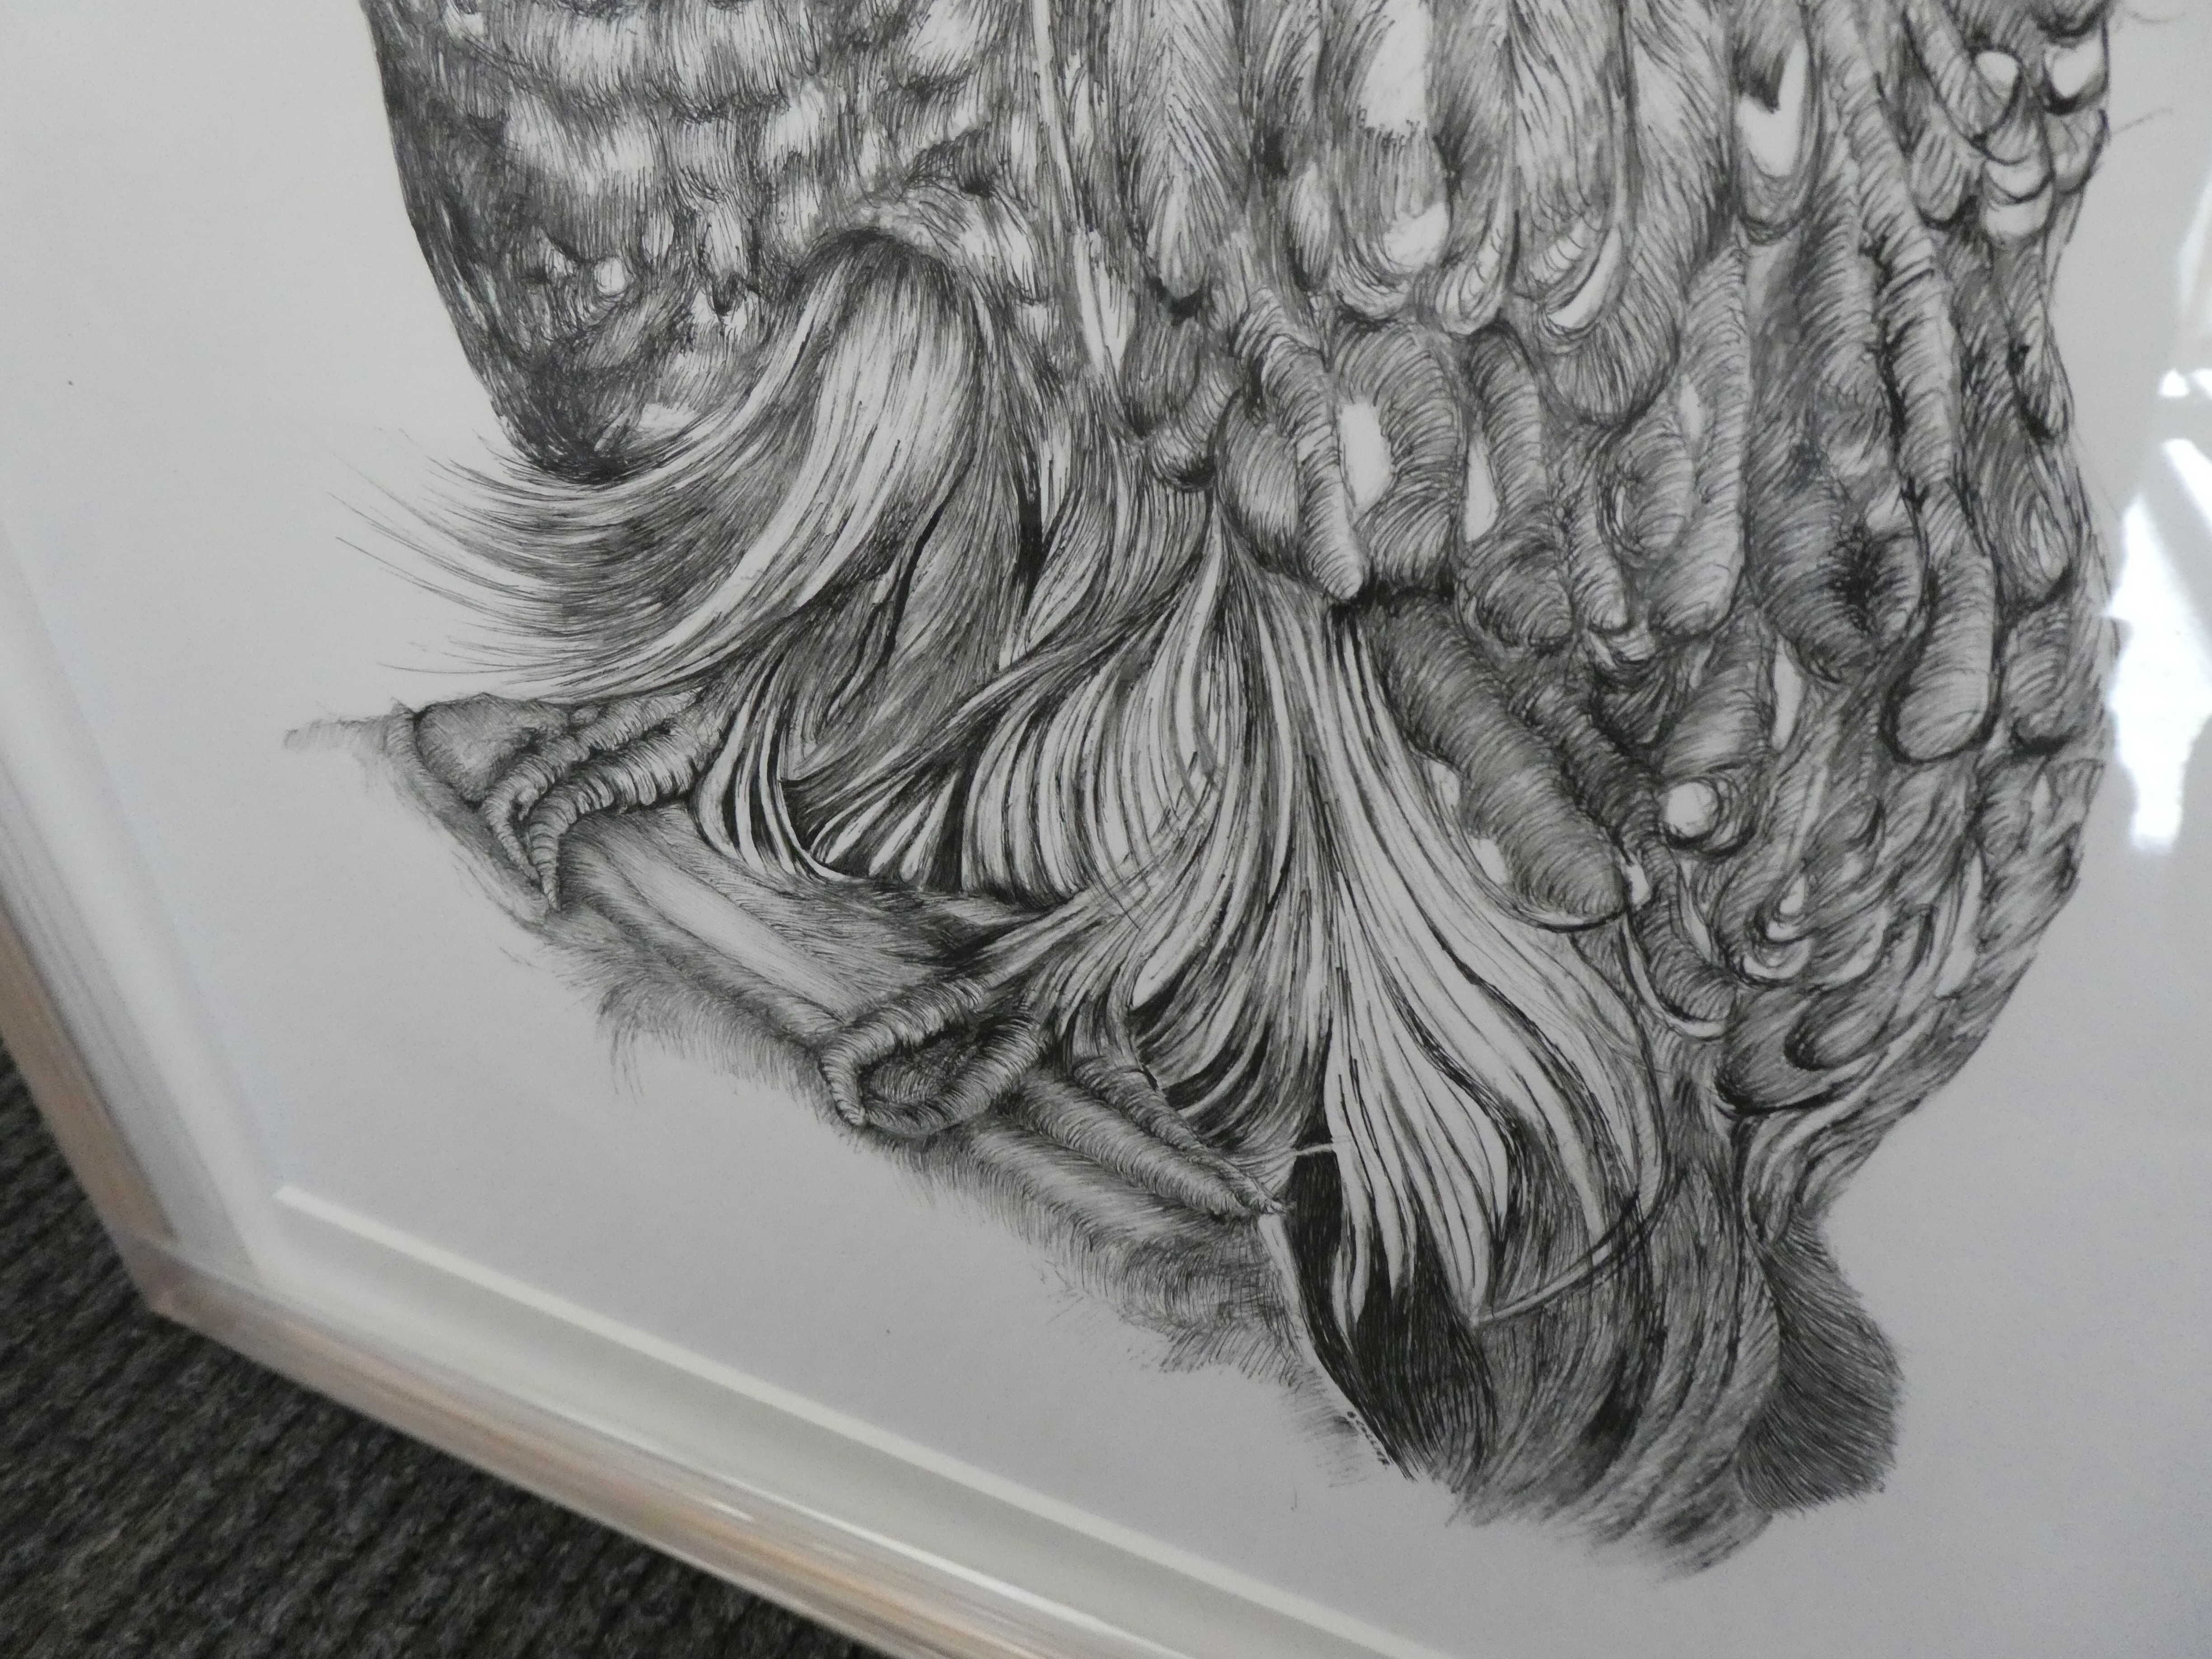 Betty_Collier_Barred_Owl_Close_Up_Tail_LowRes